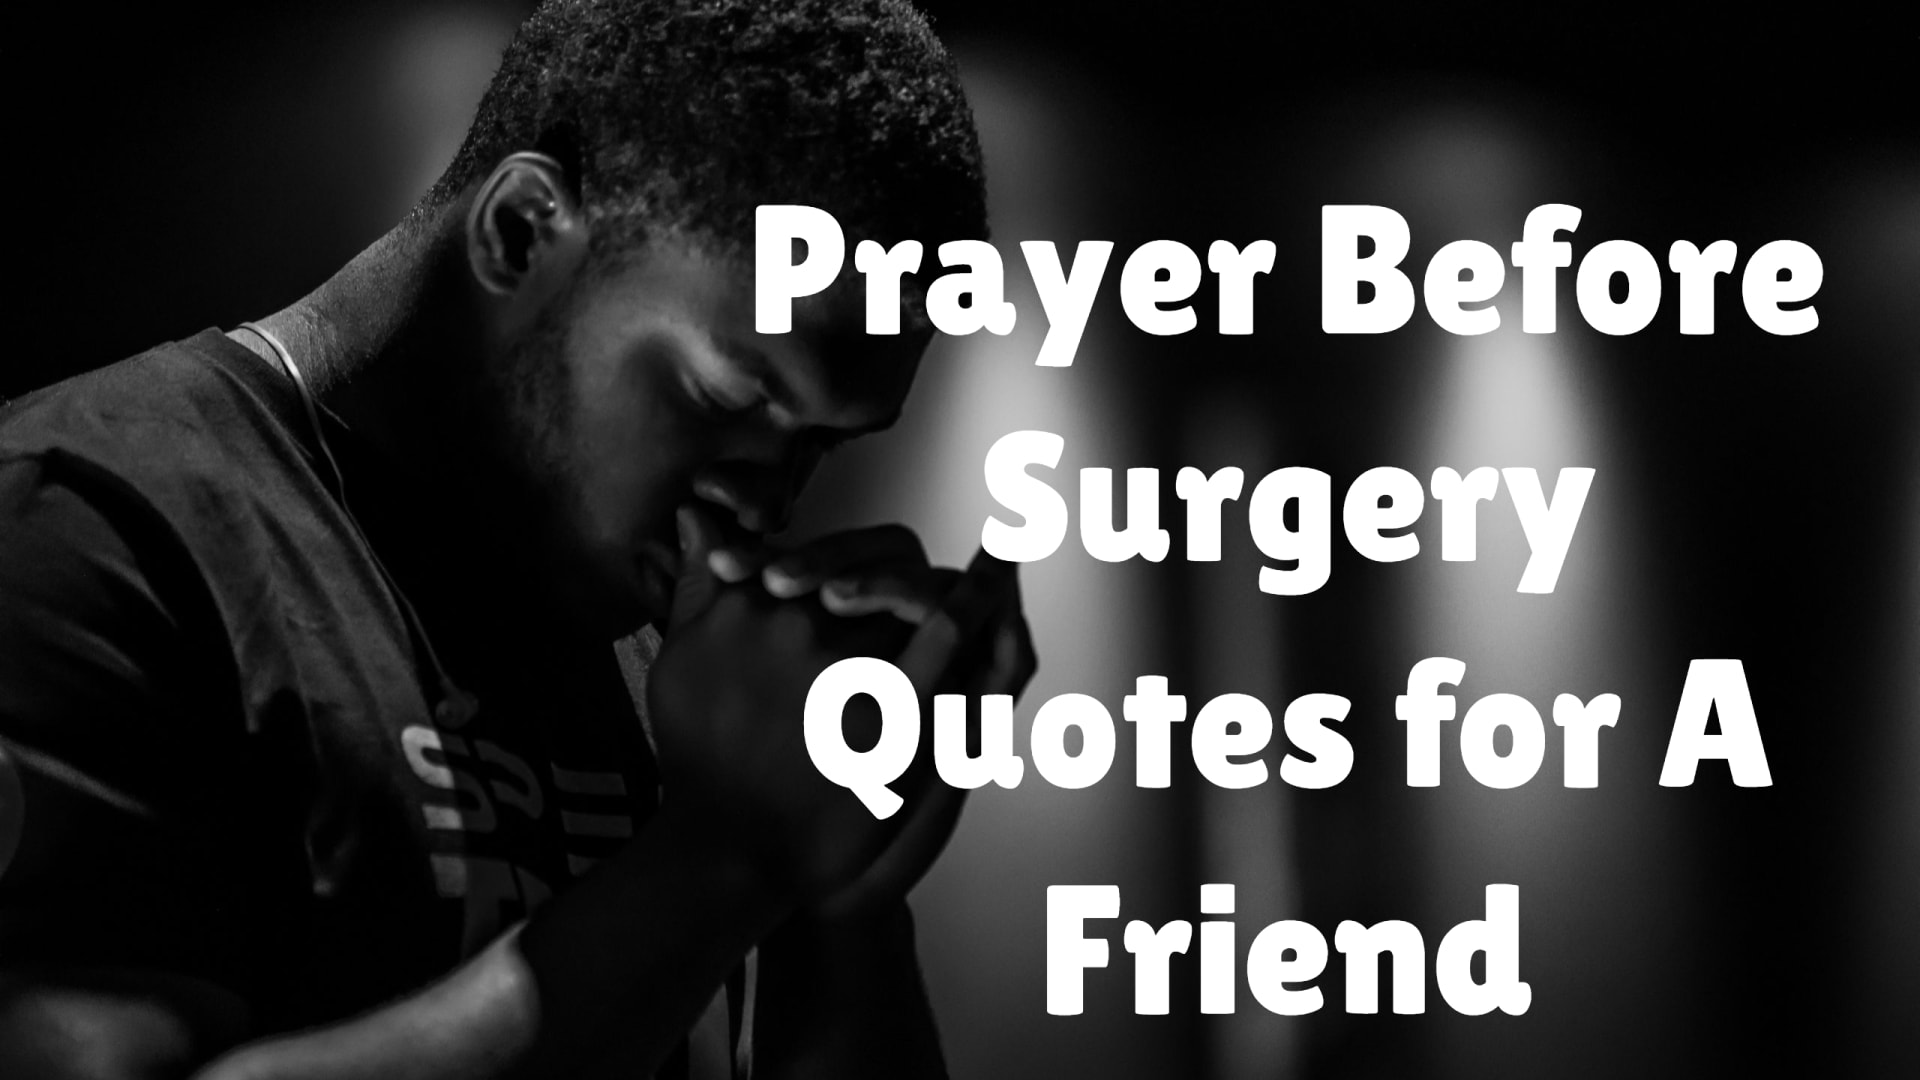 Prayer Before Surgery Quotes for A Friend